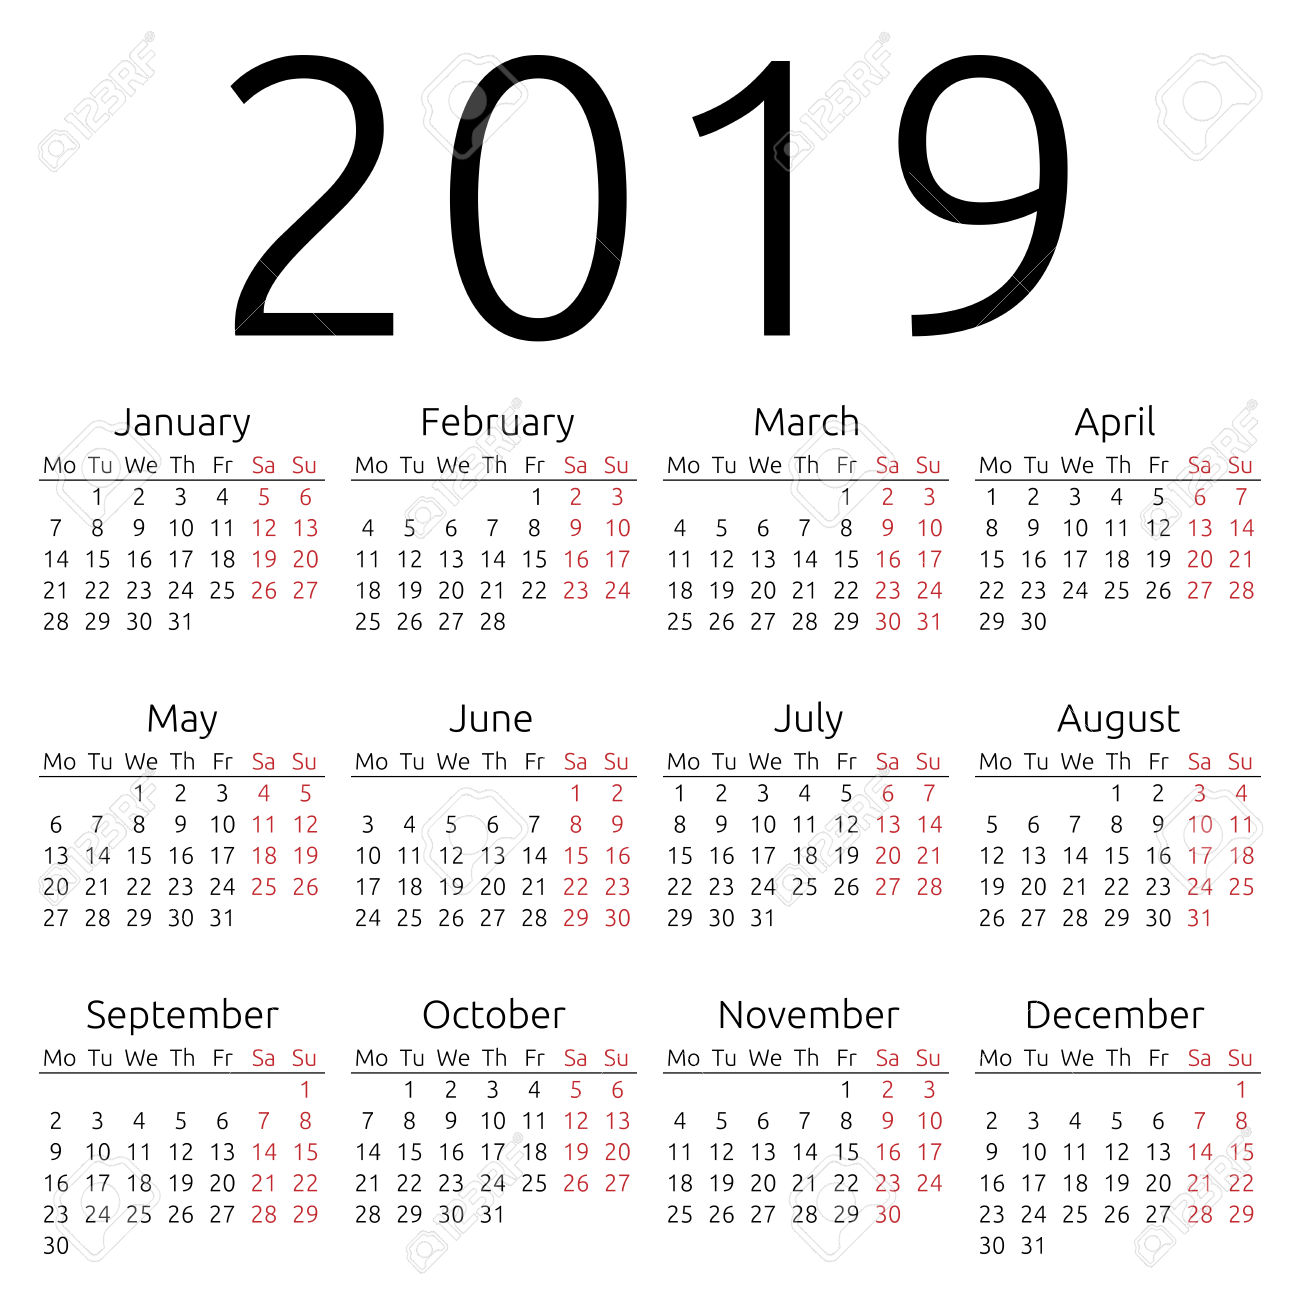 Fiscal Year 2019 Calendar Printable With Yearly